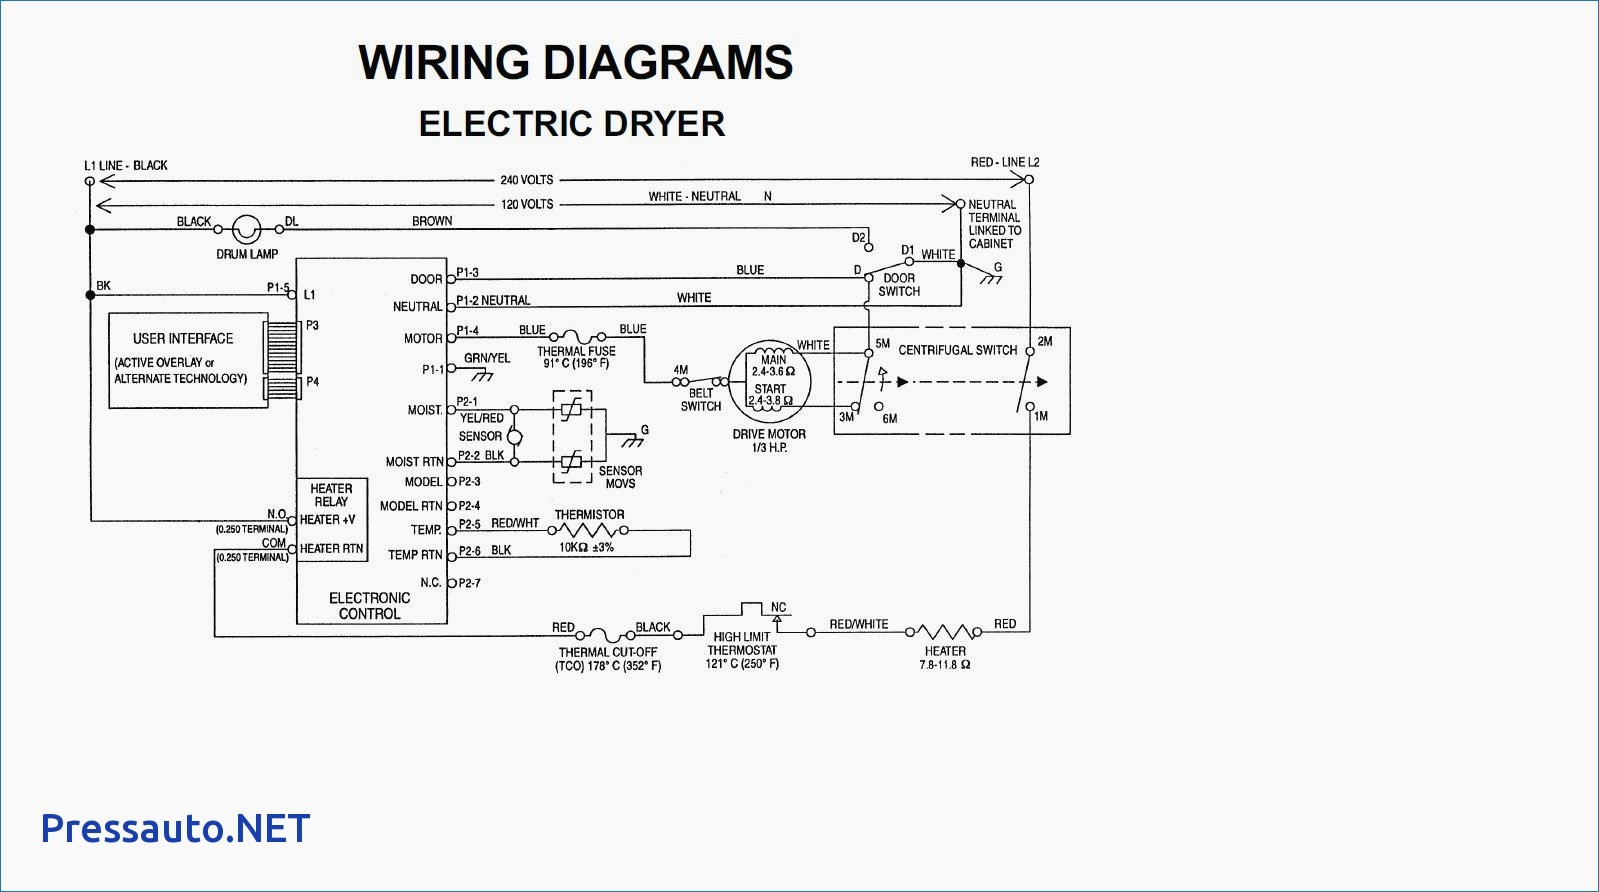 wiring diagram for clothes dryer wiring diagram database